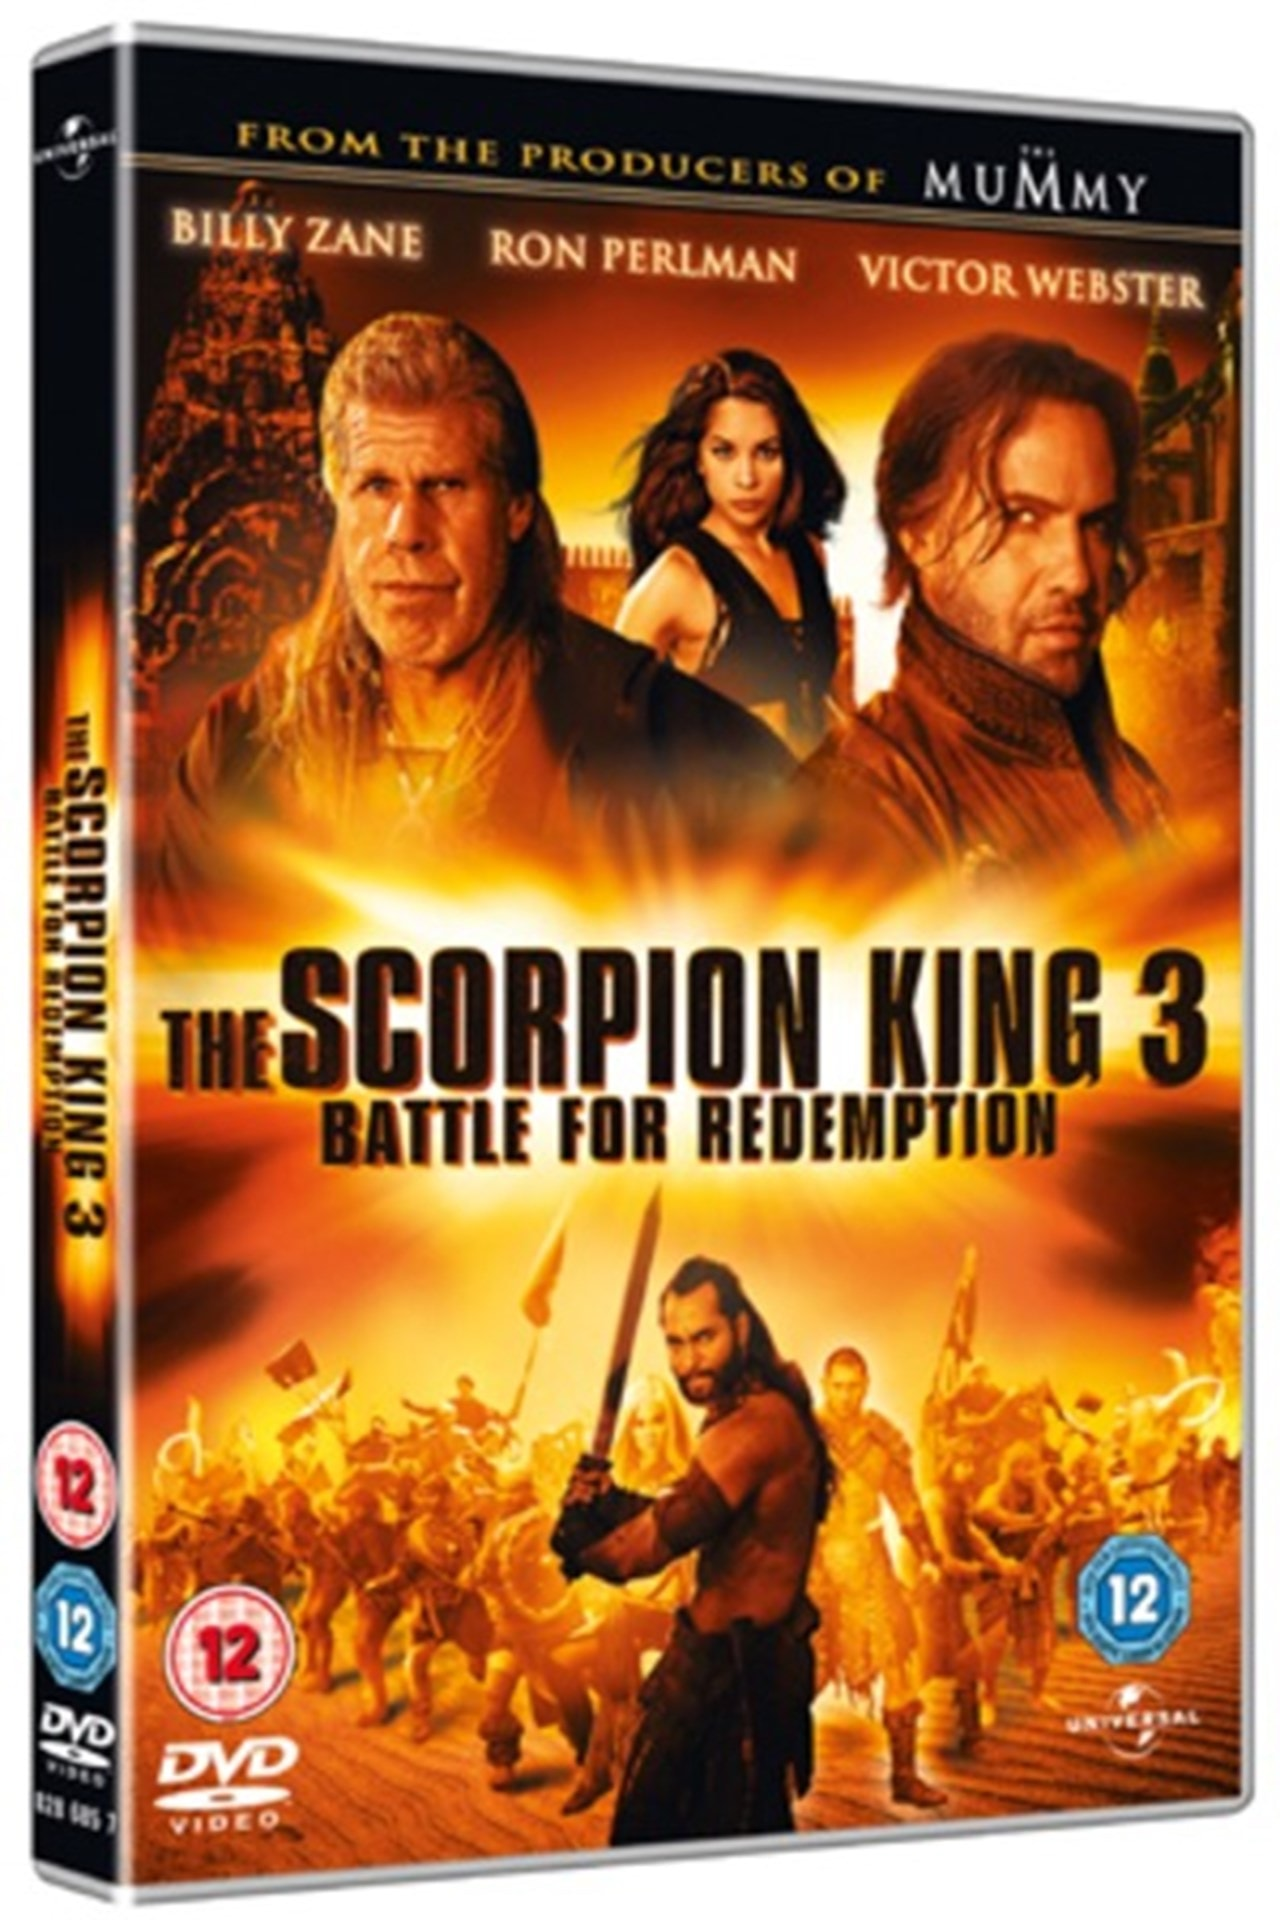 The Scorpion King 3 - Battle for Redemption - 1